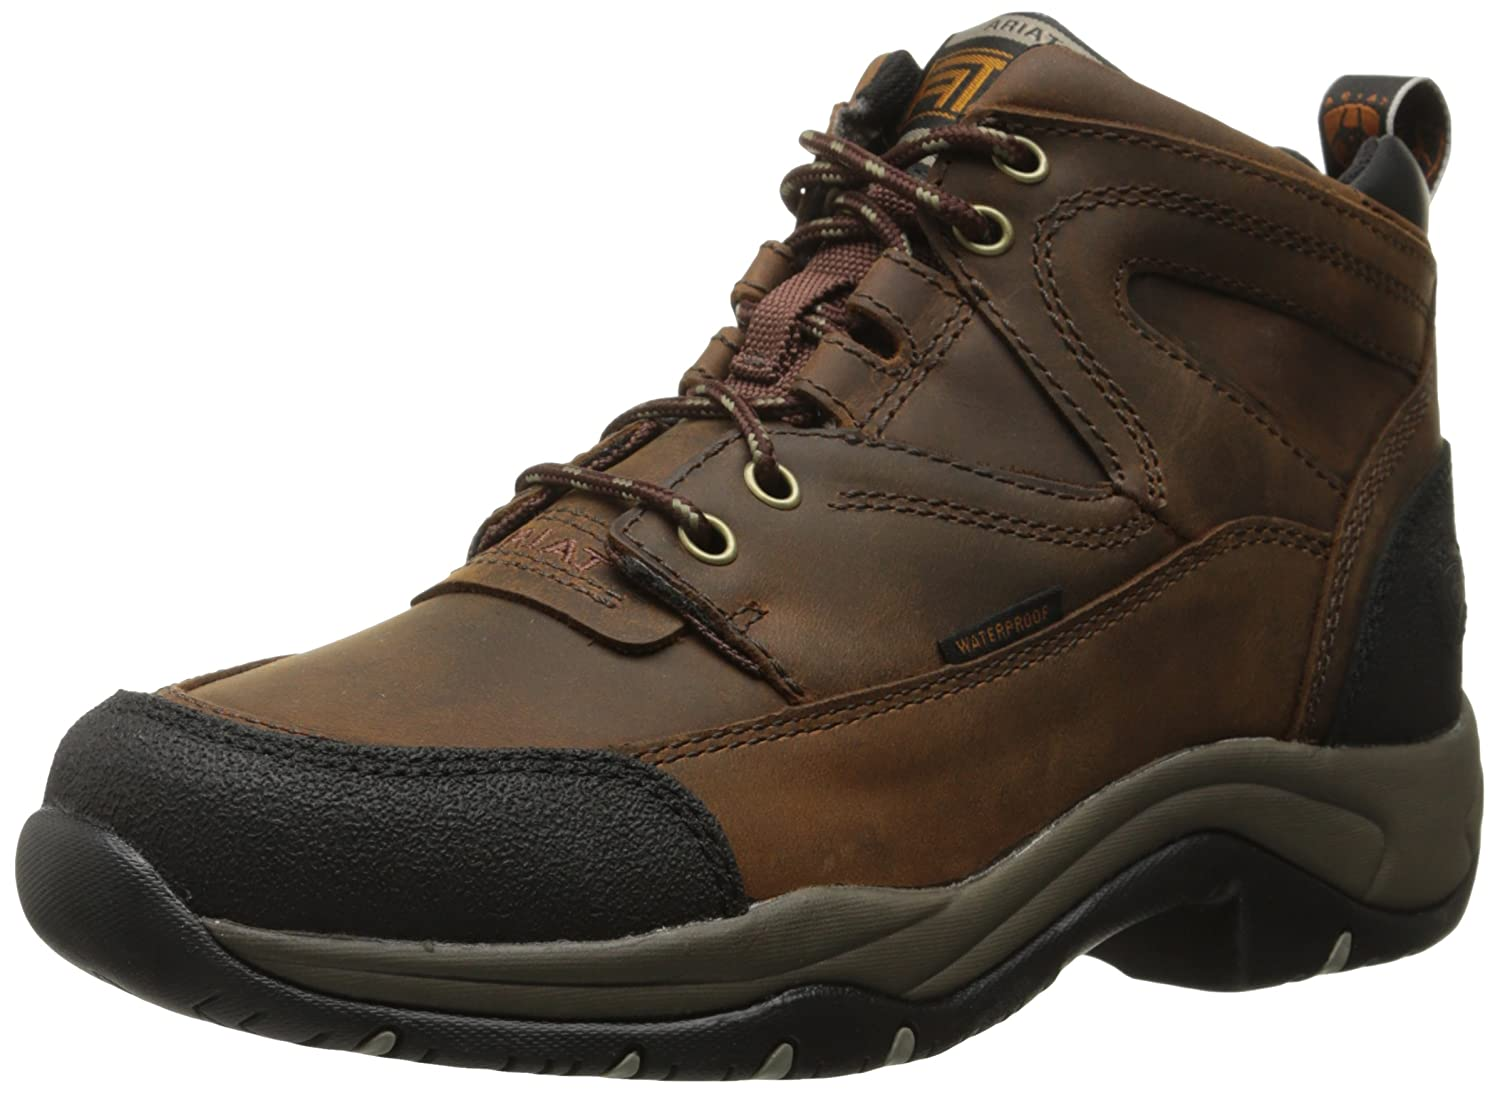 Ariat Women's Terrain H2O Hiking Boot Copper B0012MMWK6 7 B(M) US|Copper